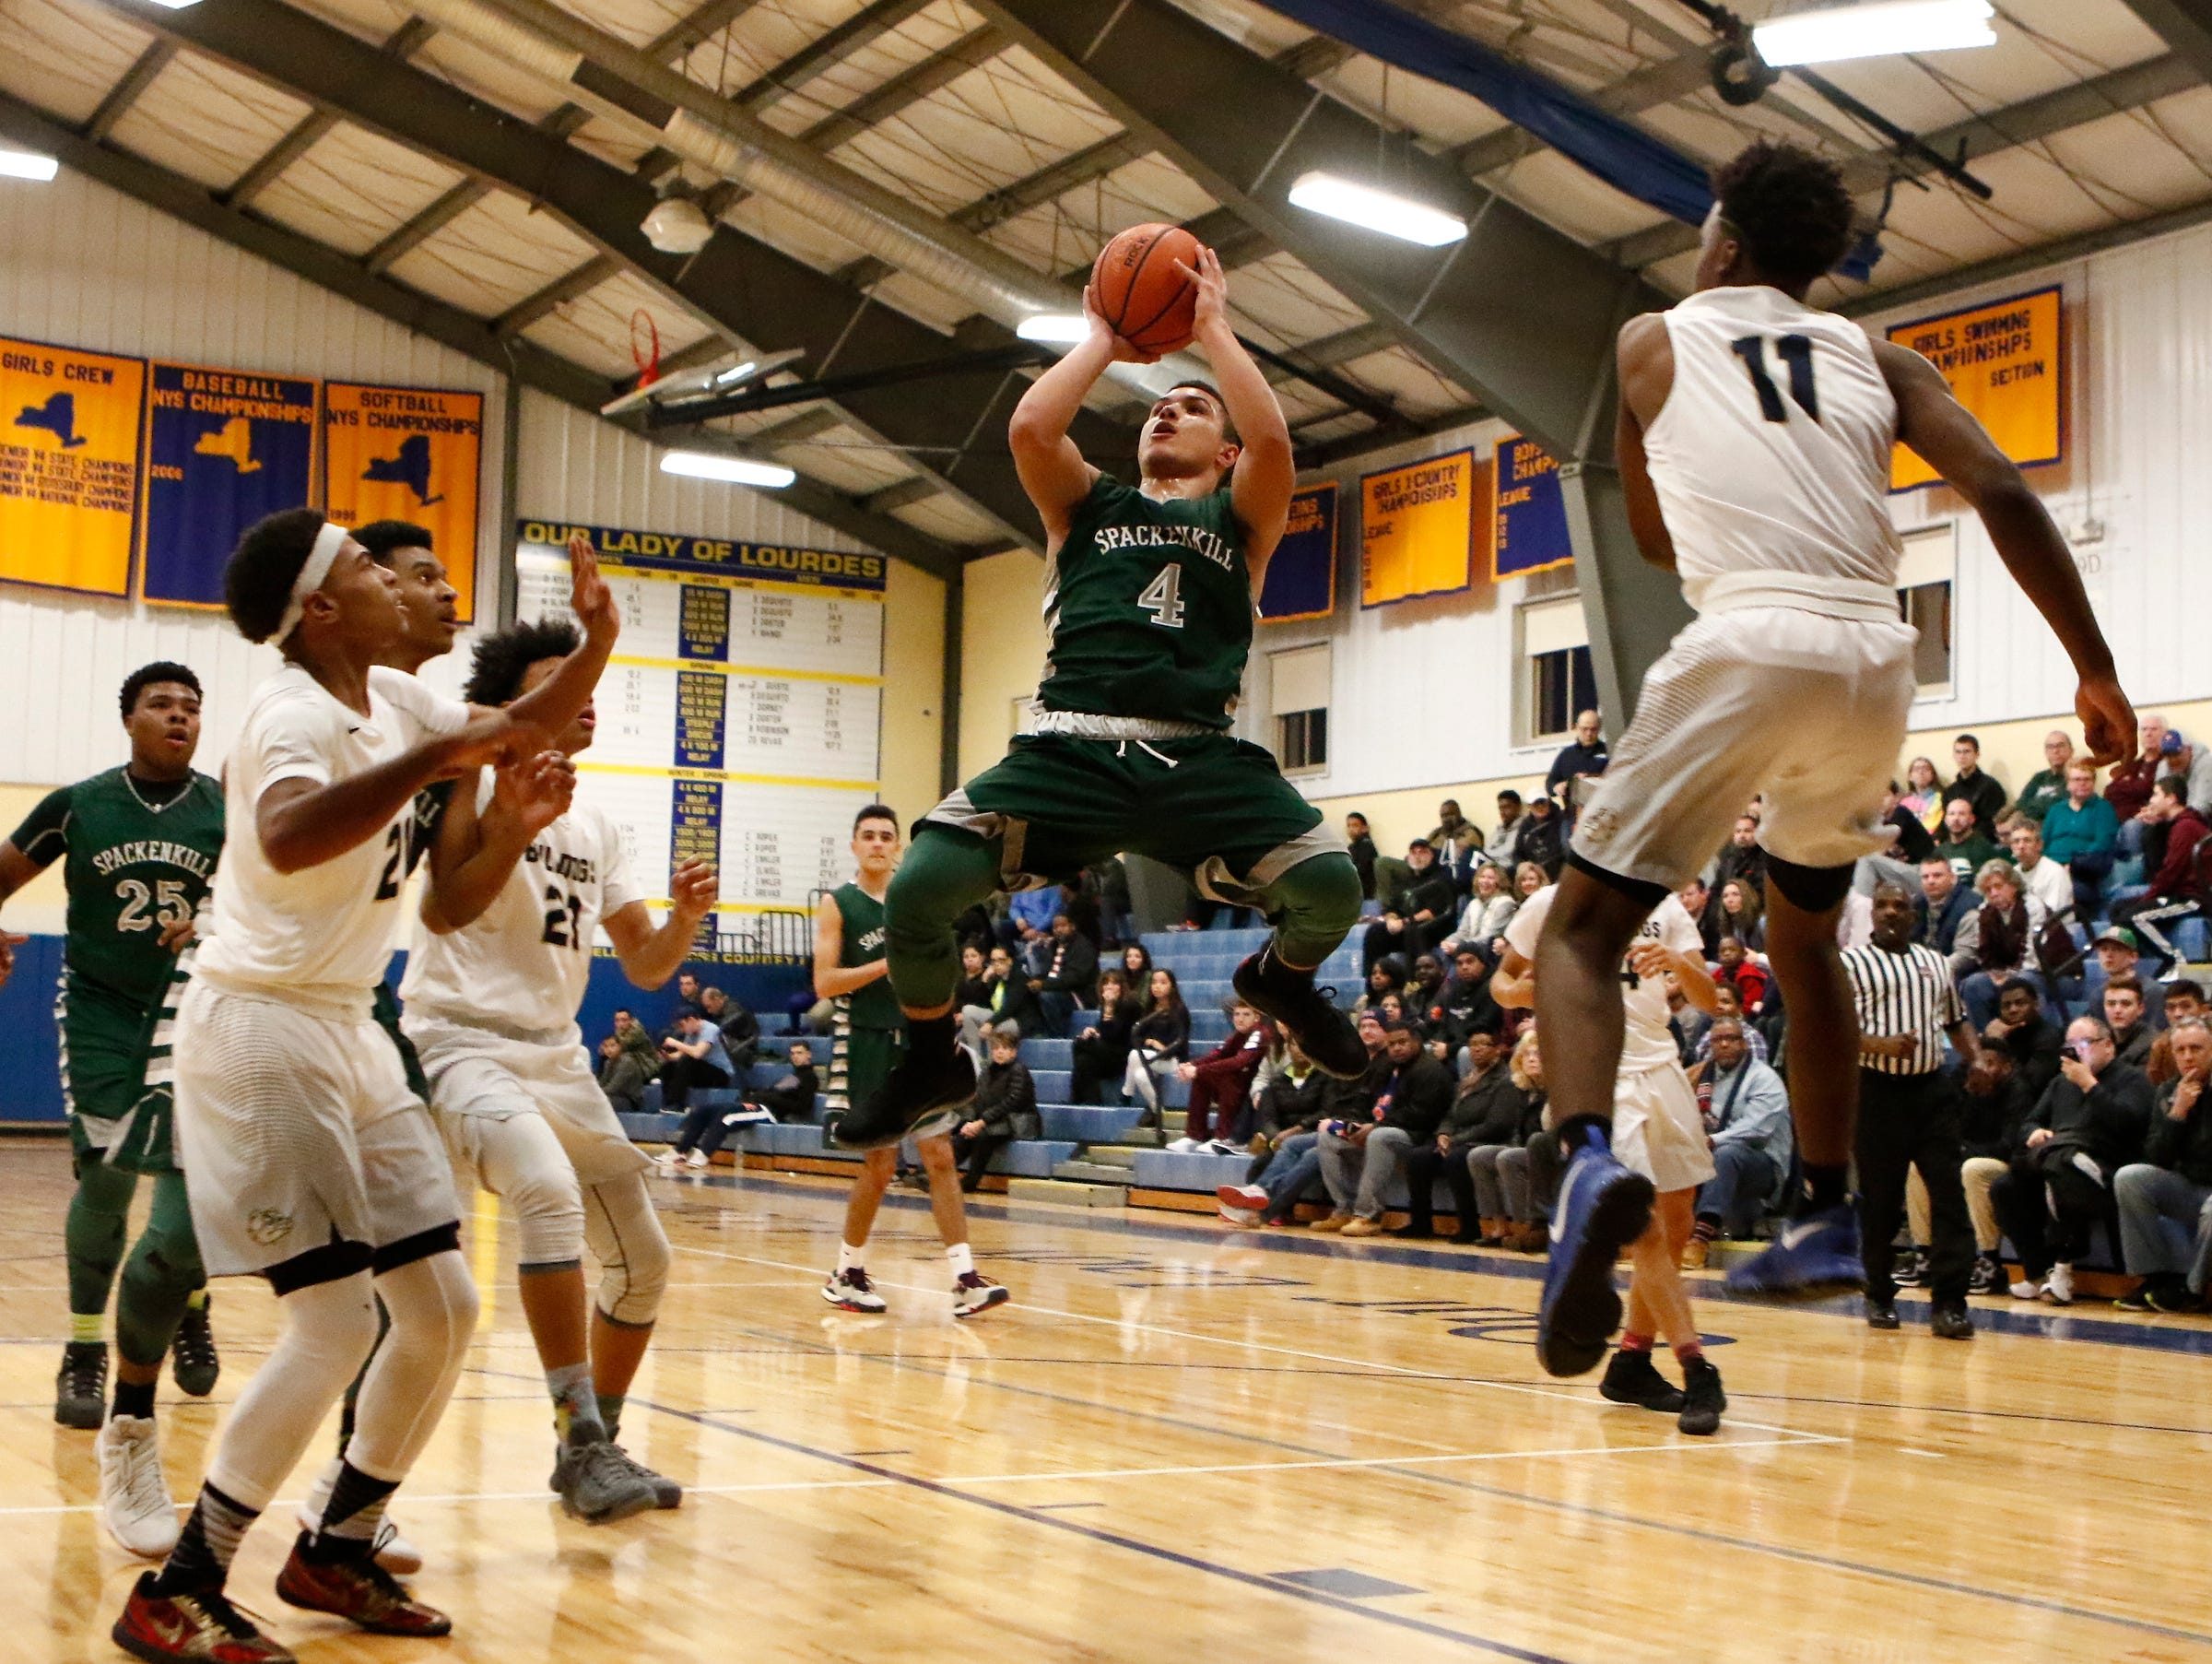 Spackenkill's Camron Abalos (4) puts up a shot in the championship game against Beacon in the Duane Davis memorial basketball tournament at Our Lady of Lourdes High School in Poughkeepsie on Saturday, December 31, 2016.